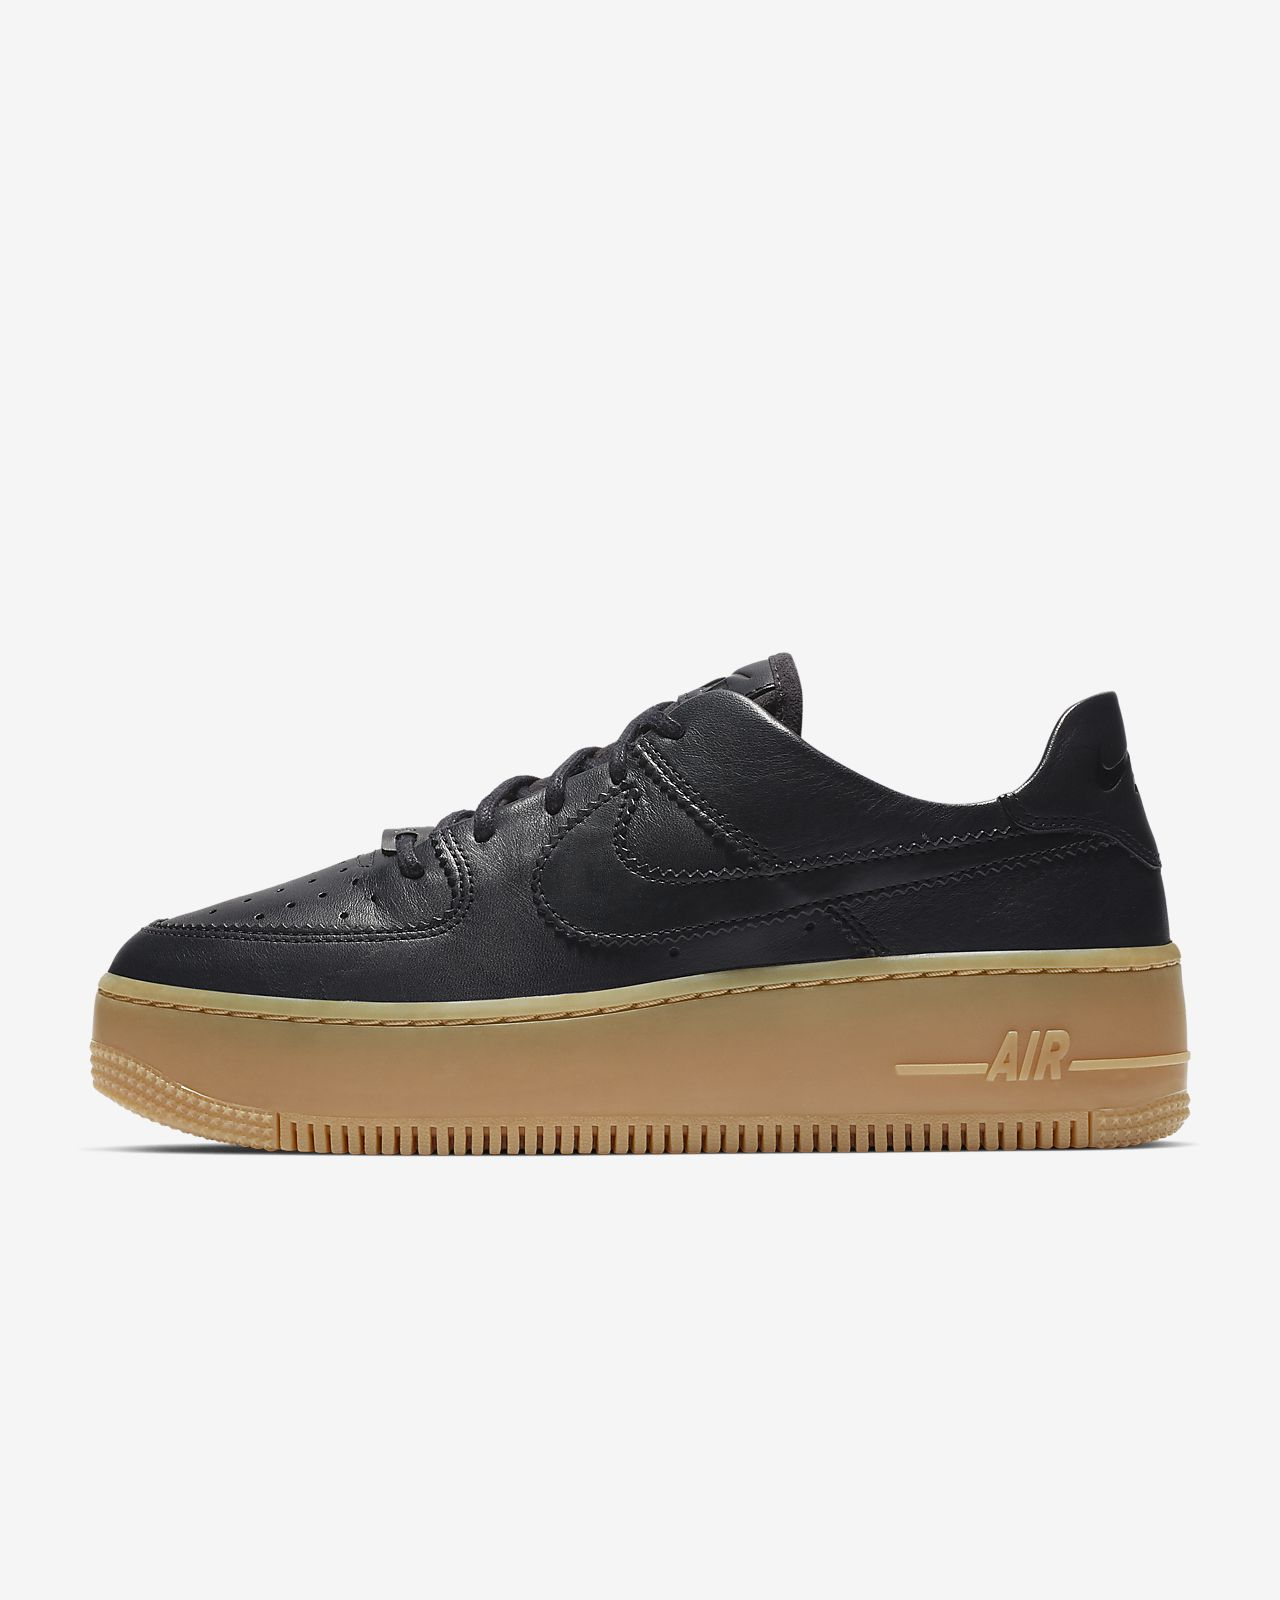 5d28938cfada8 Nike Air Force 1 Sage Low LX Women's Shoe. Nike.com GB